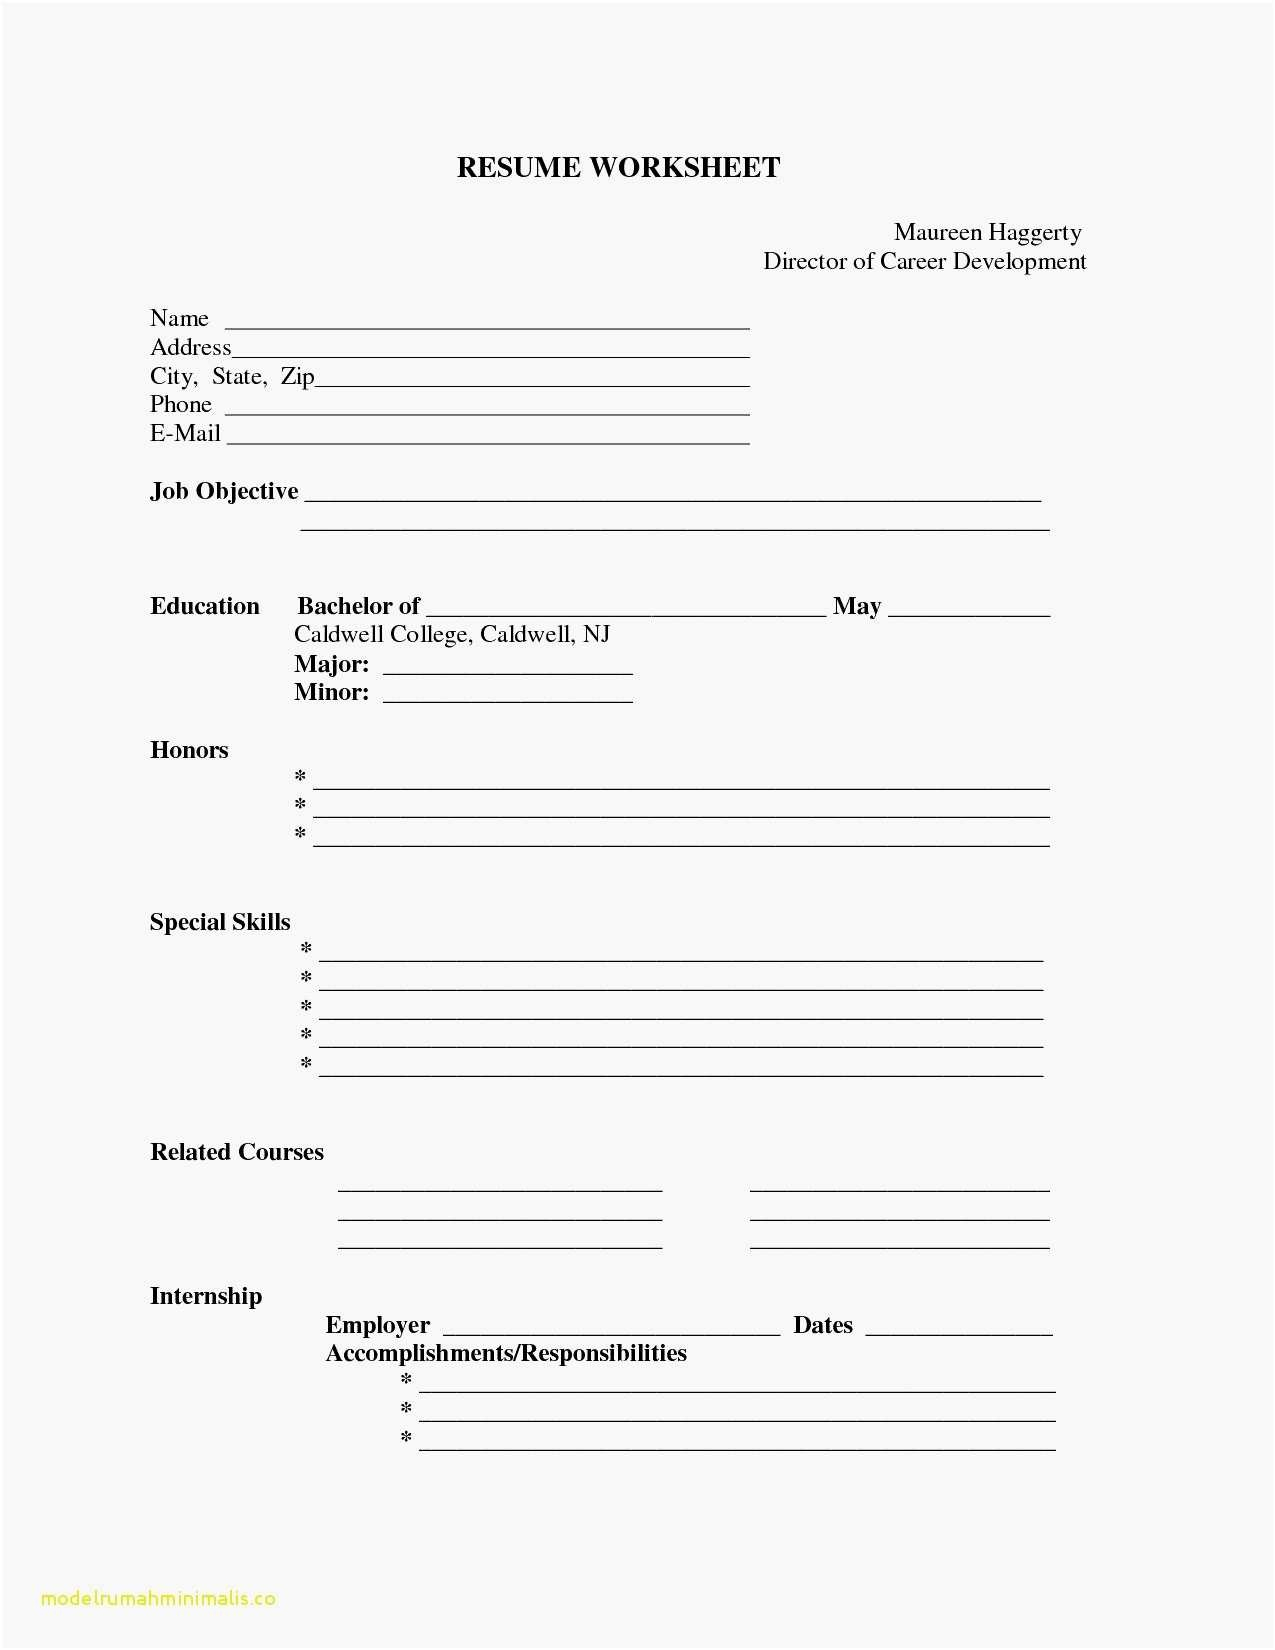 Blank Resume Pdf - Best Resume Examples Luxury Fill In the Blank Resume Resume Examples